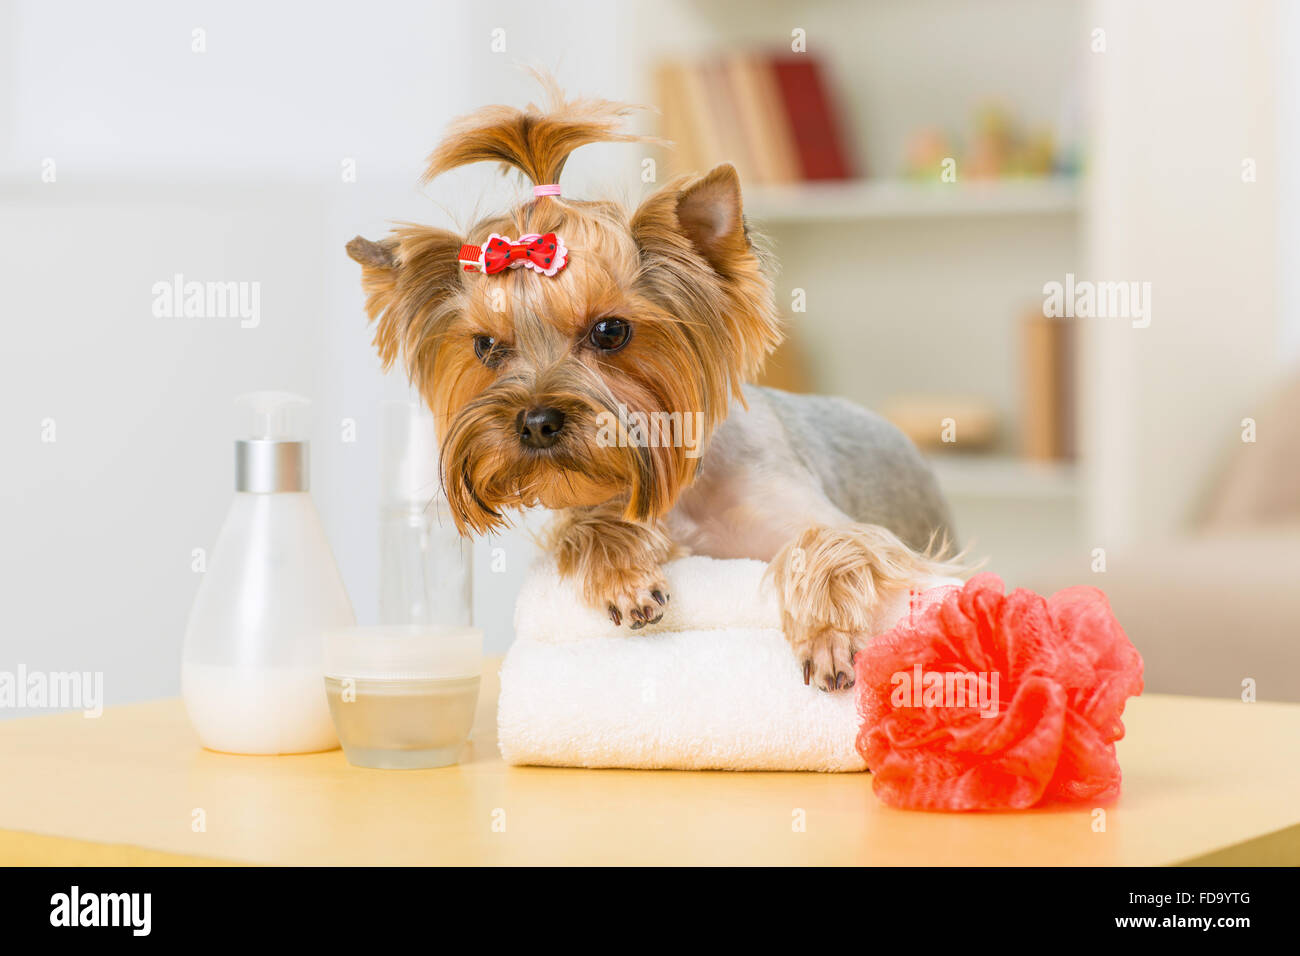 Yorkshire terrier on folded towel. - Stock Image